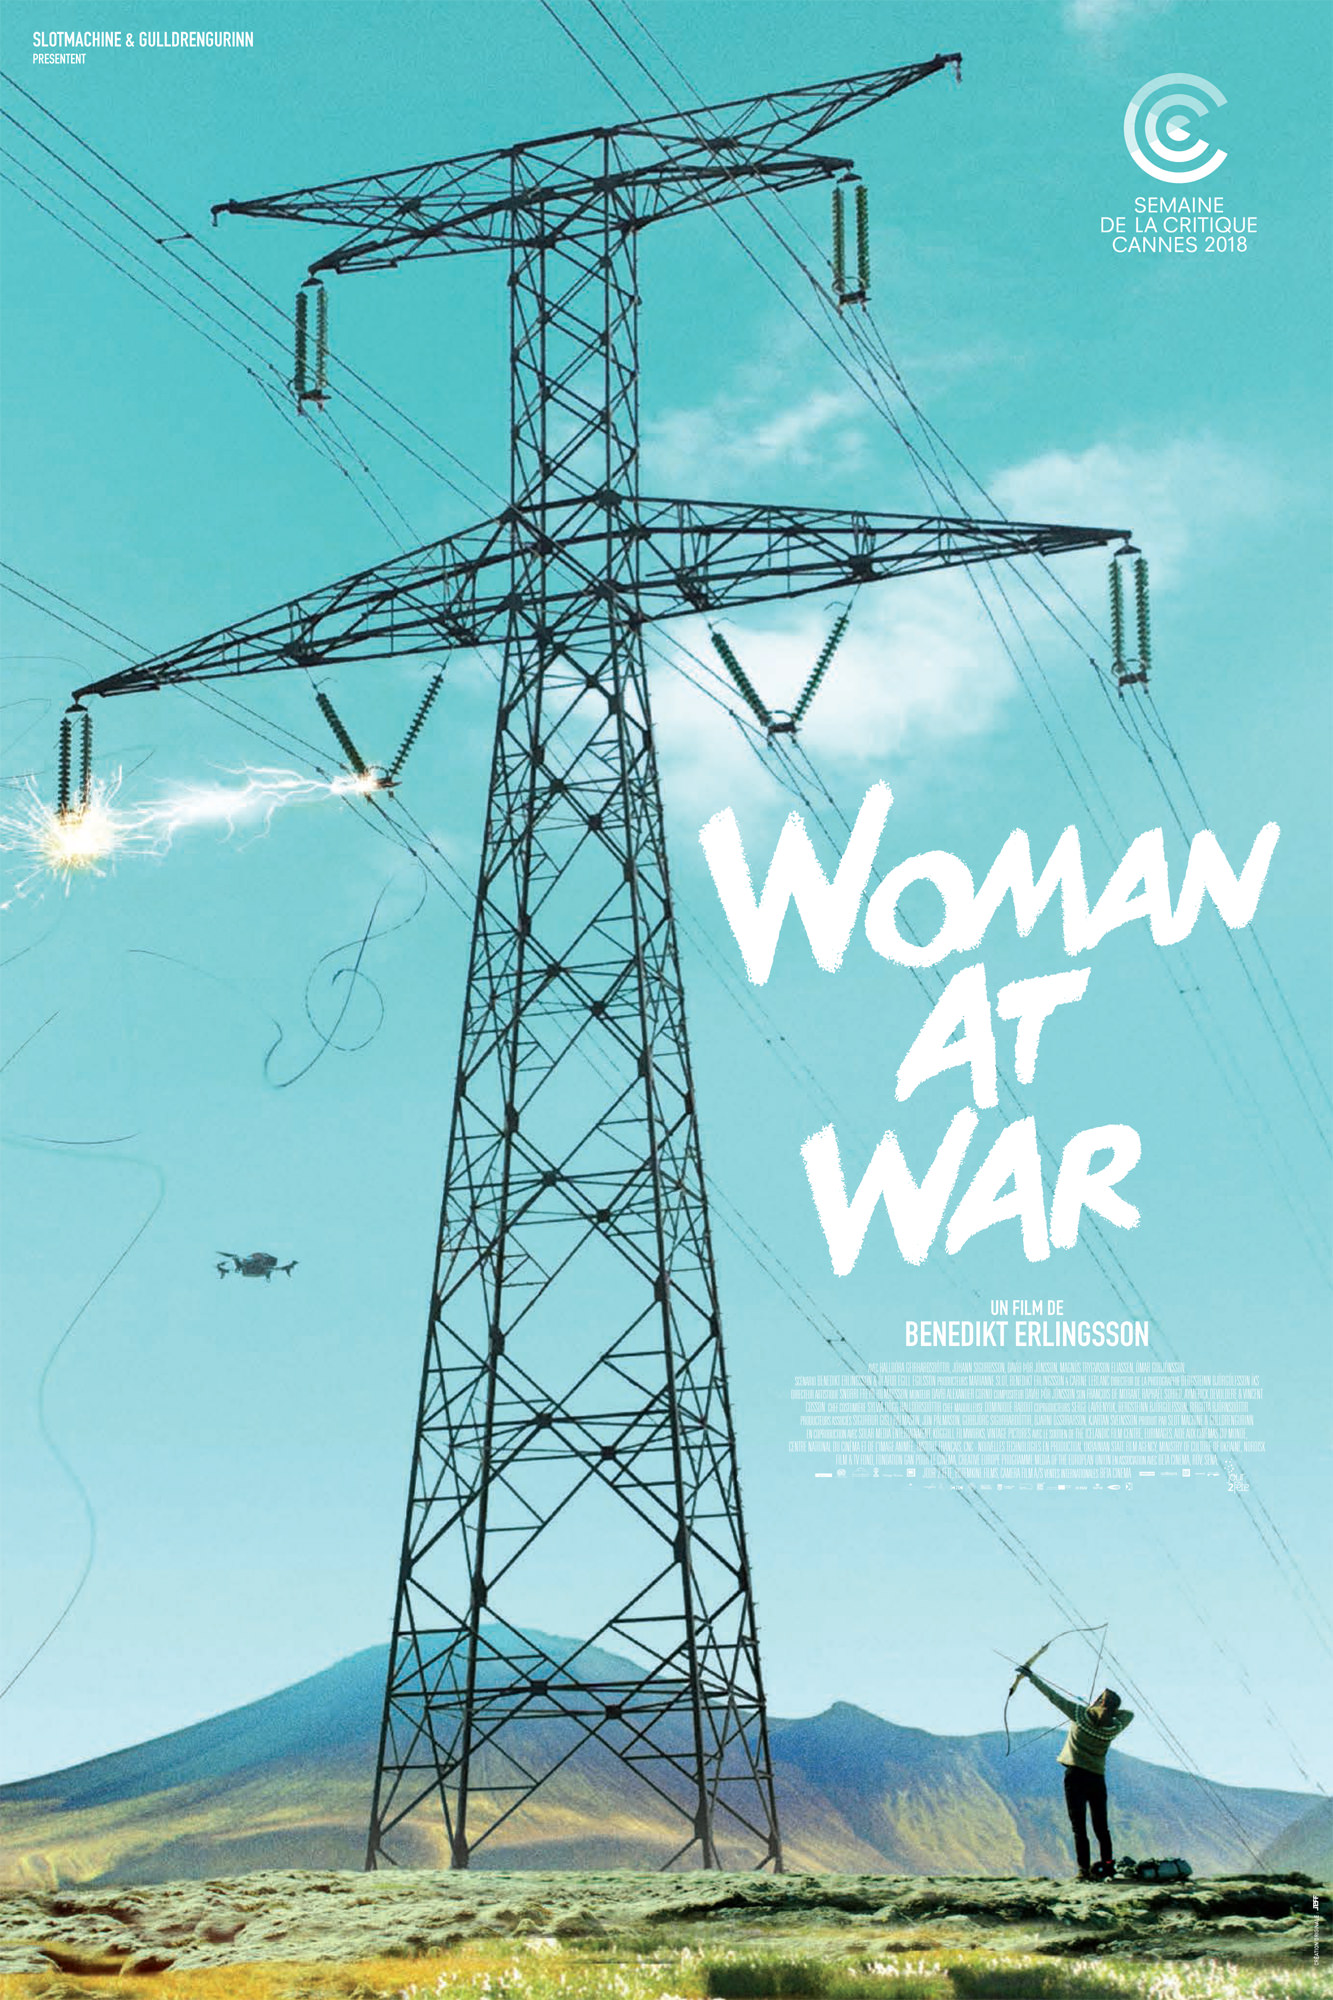 Woman at War - Affiche Cannes 2018